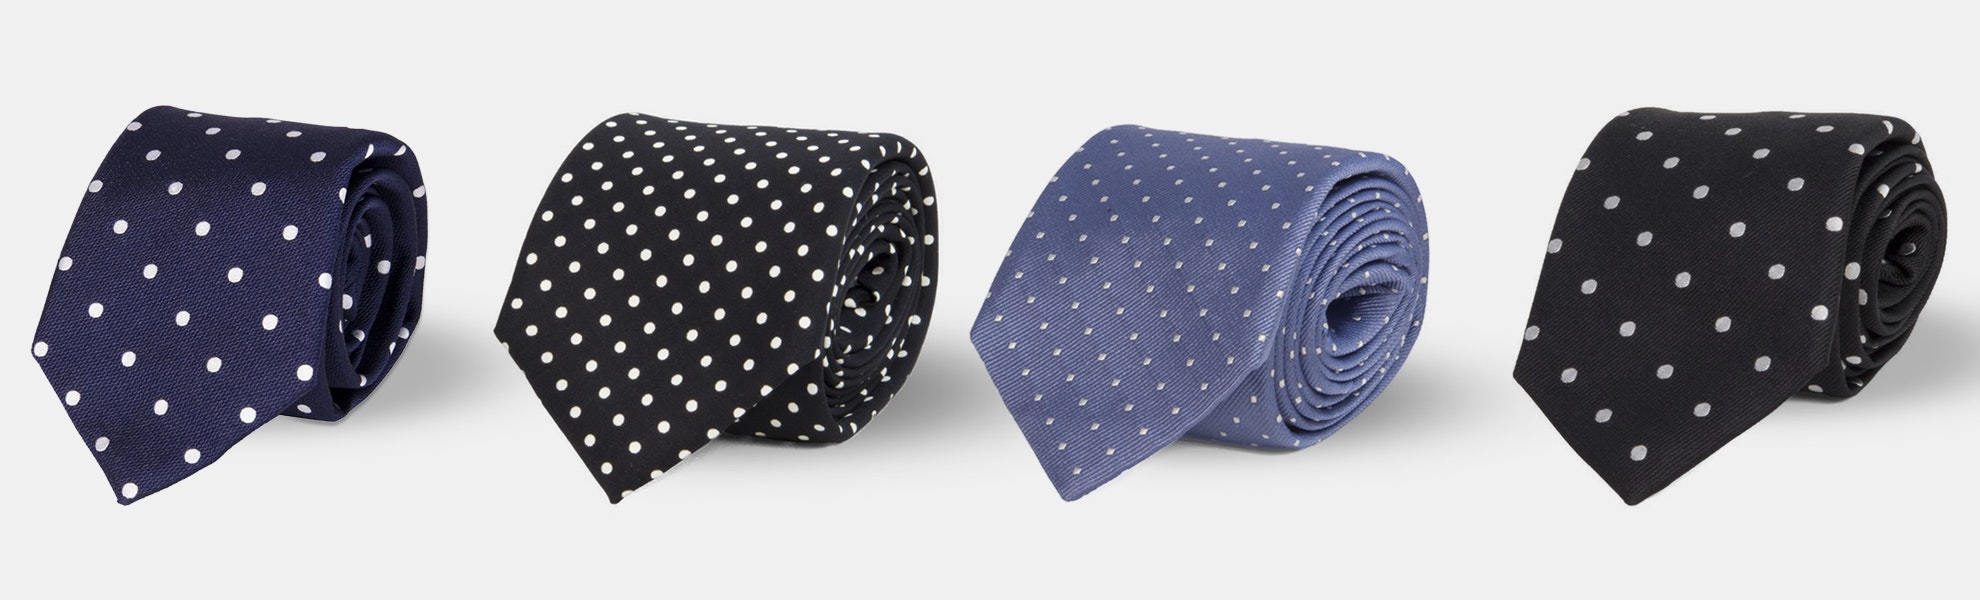 40 Colori Dotted Silk Ties